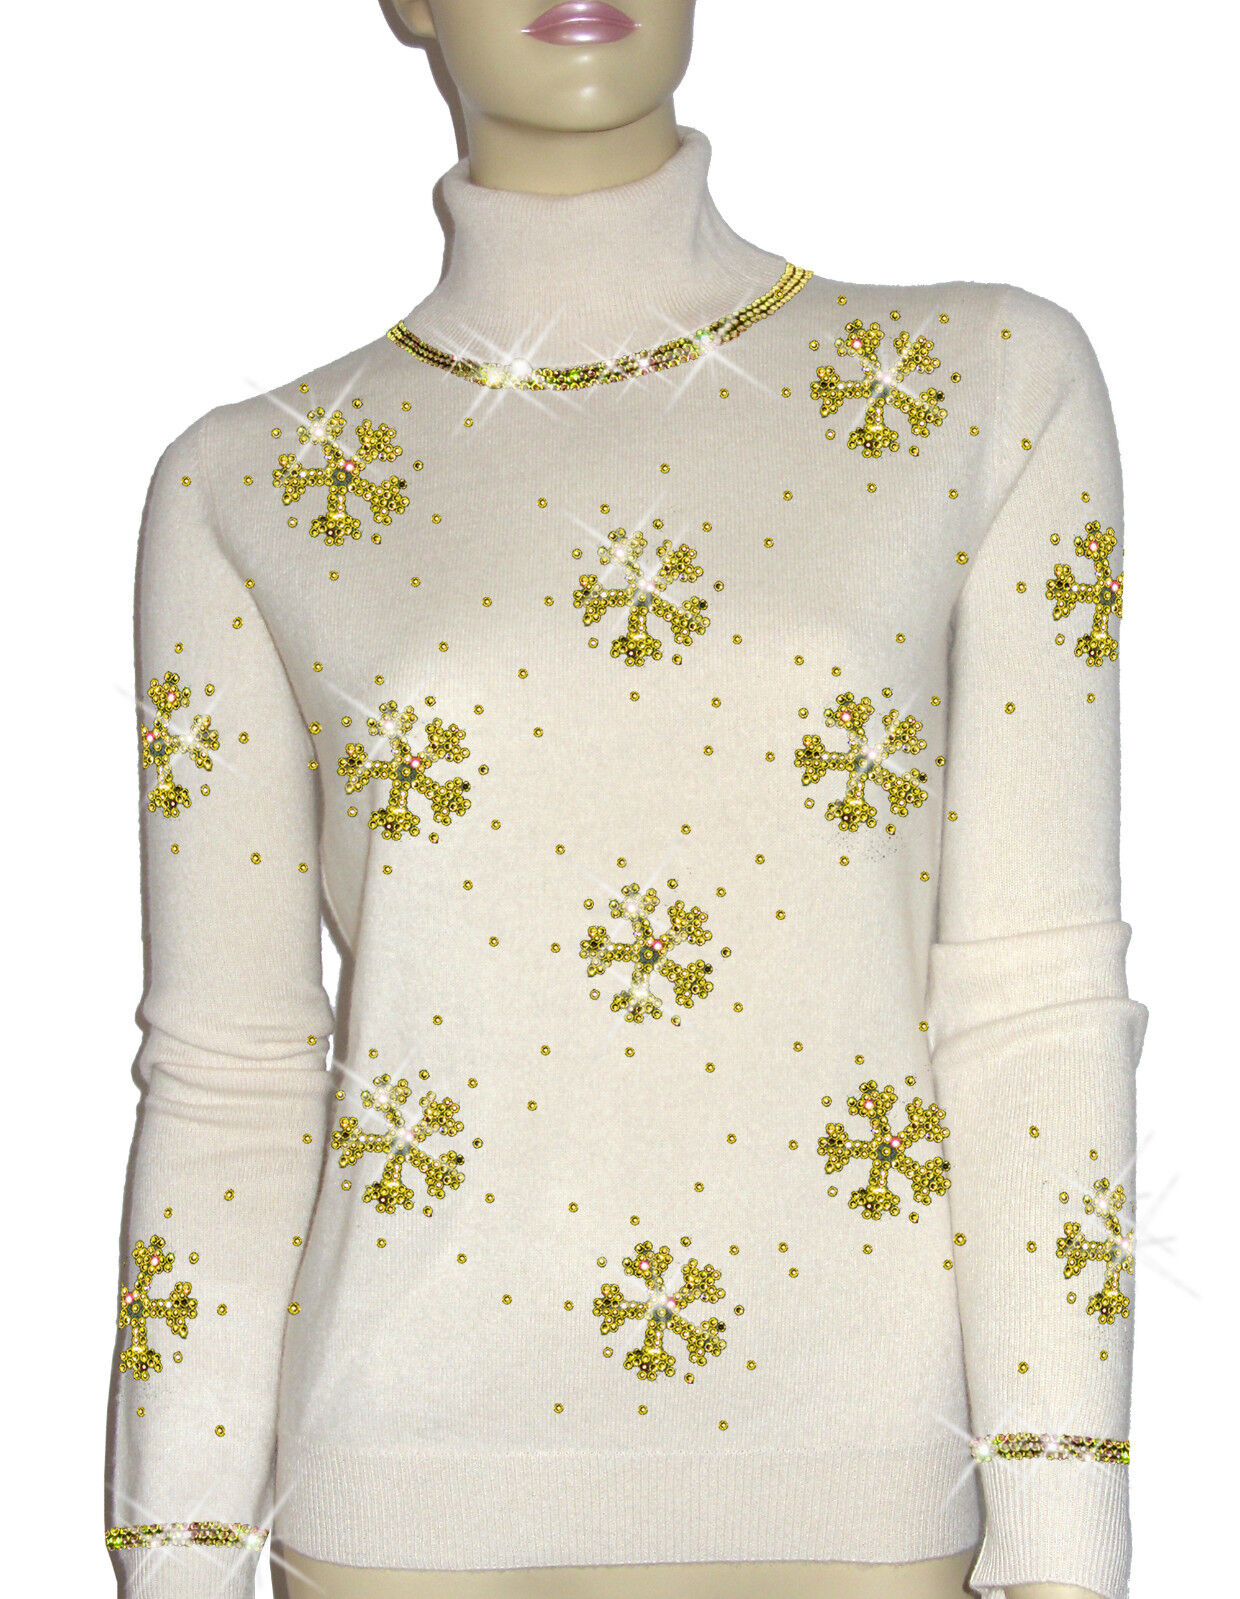 Luxe Oh` Dor 100% Cashmere Sweater Luxury Snowflakes Pearl White gold 34 36 S